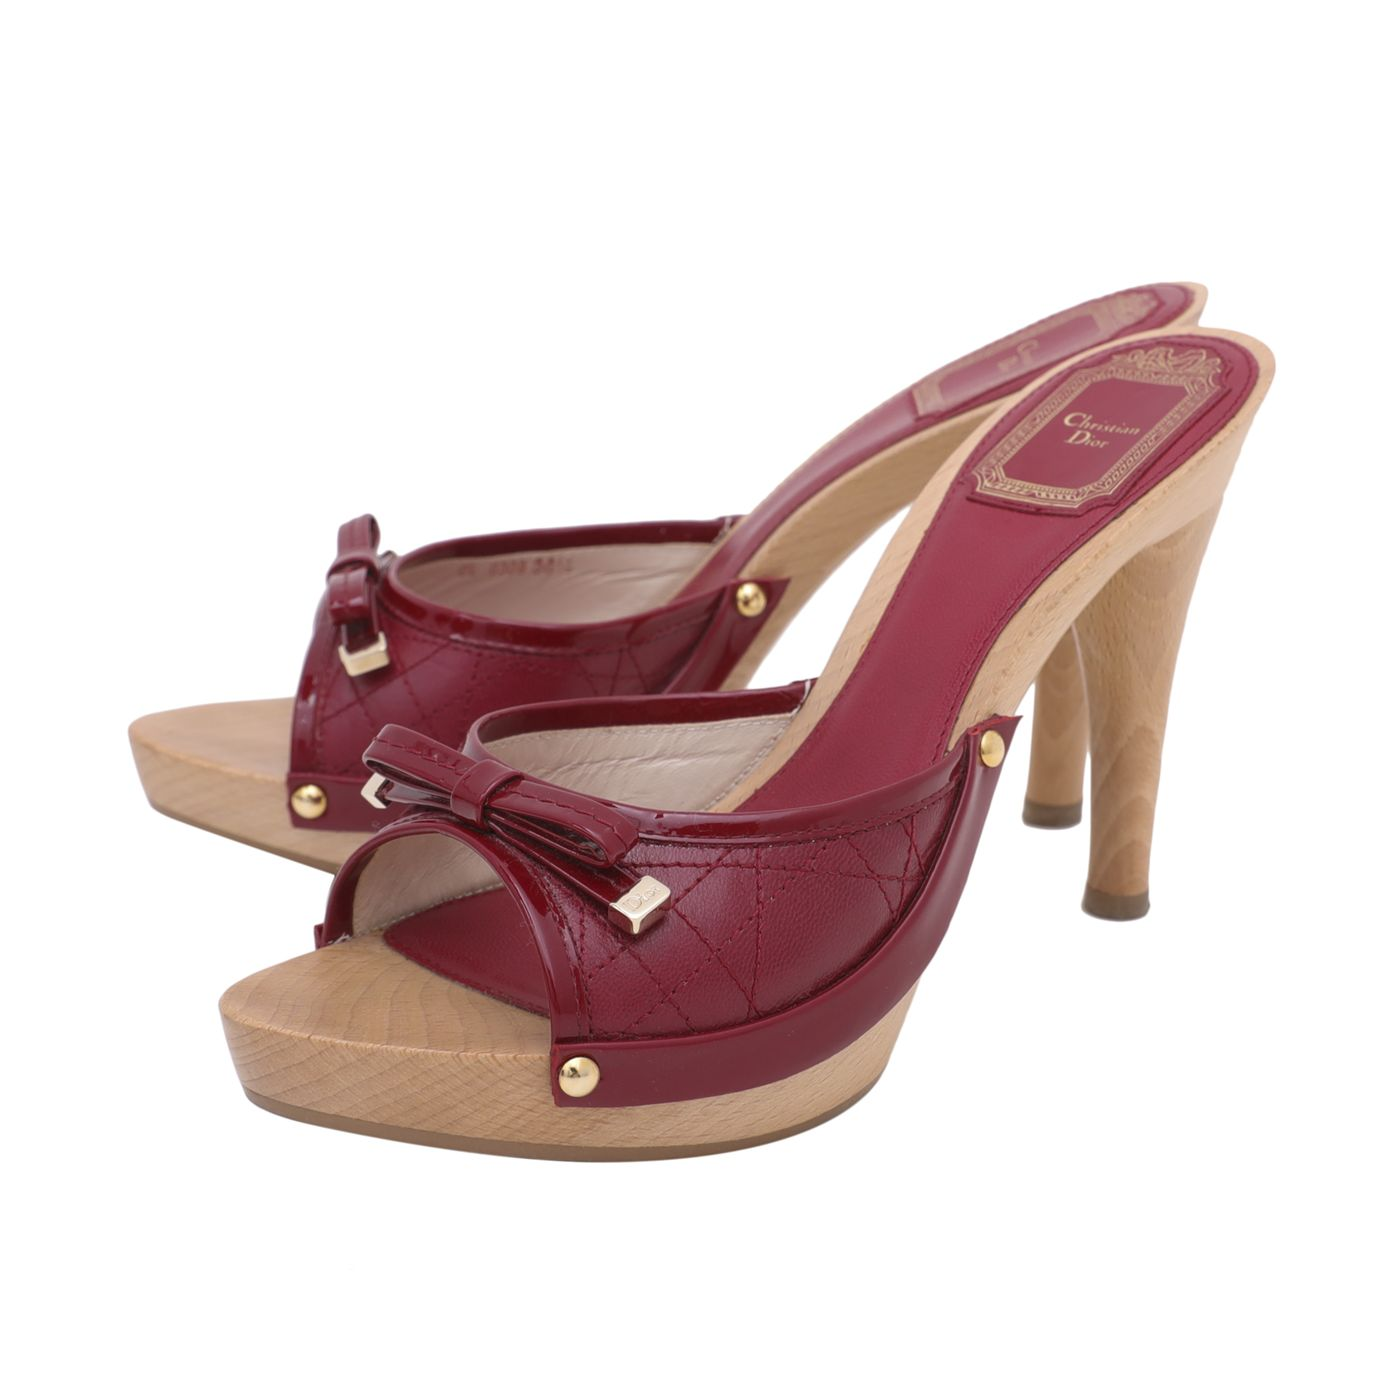 Christian Dior Cherry Cannage Bow Mule Clog Sandals 36.5